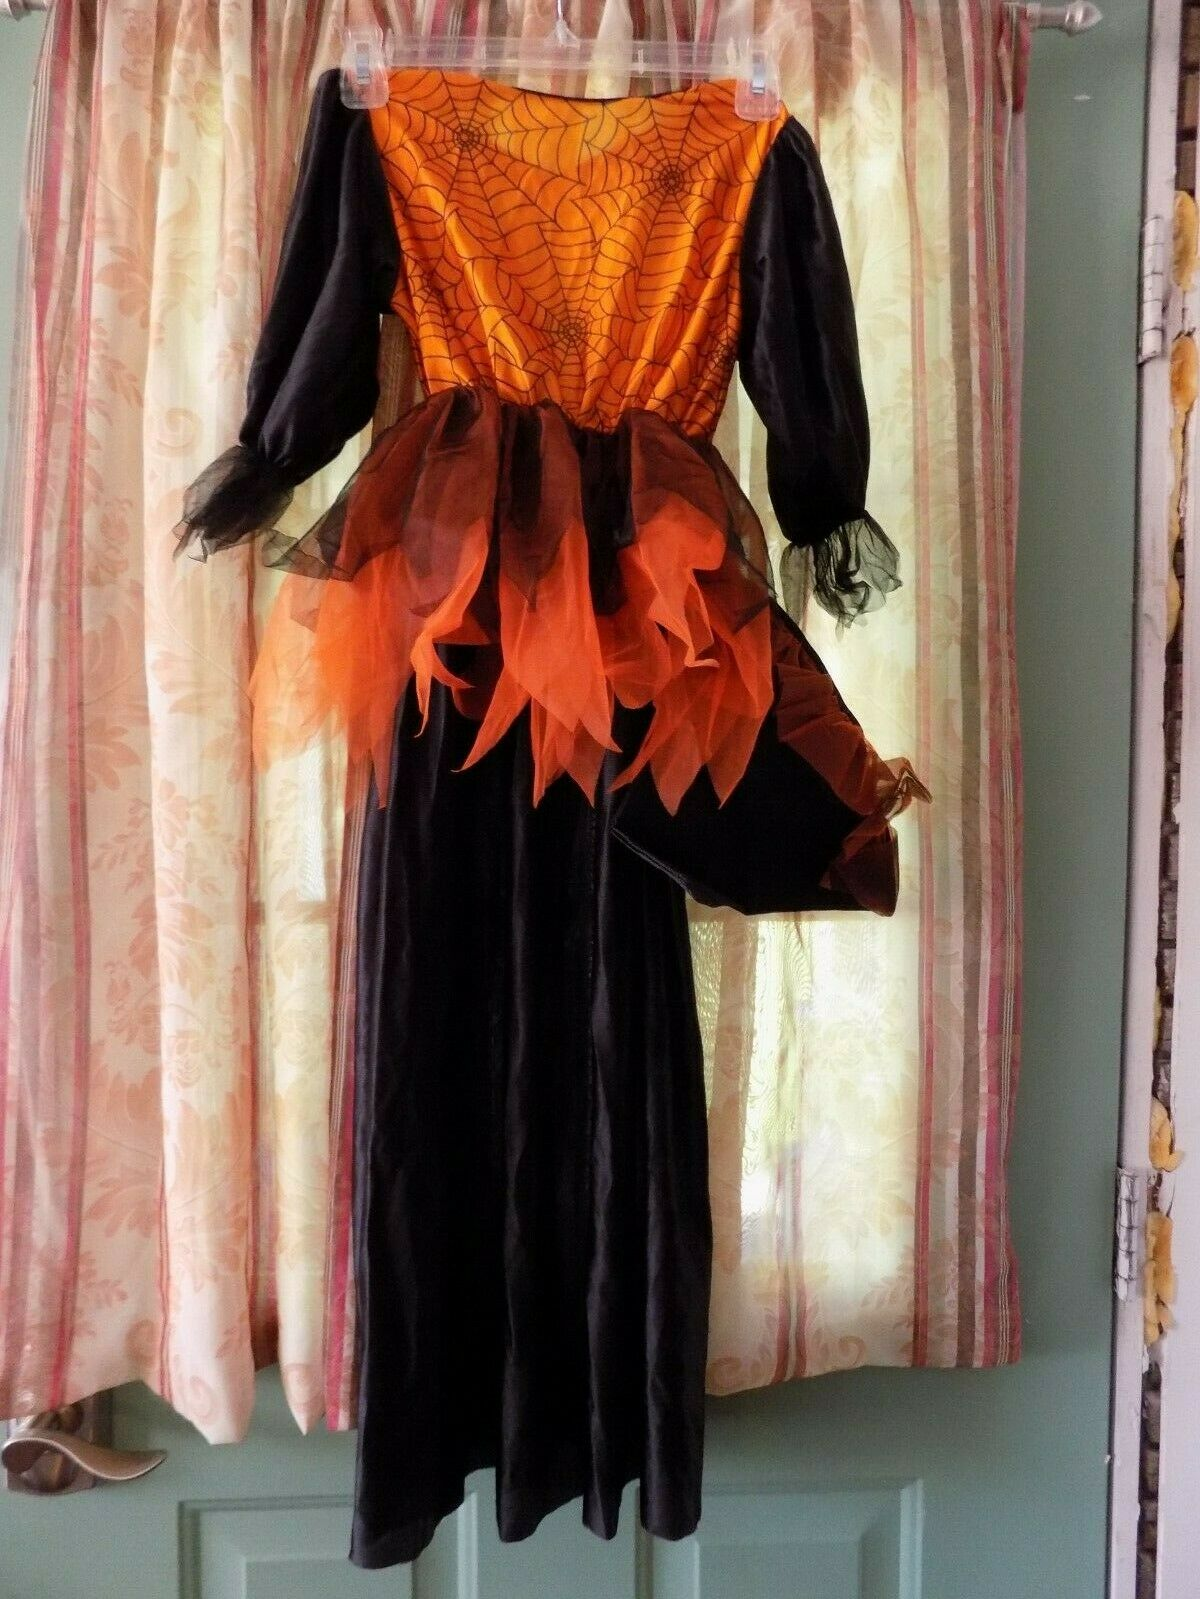 Child's Spider Witch Costume with hat size 1-4 - orange and black